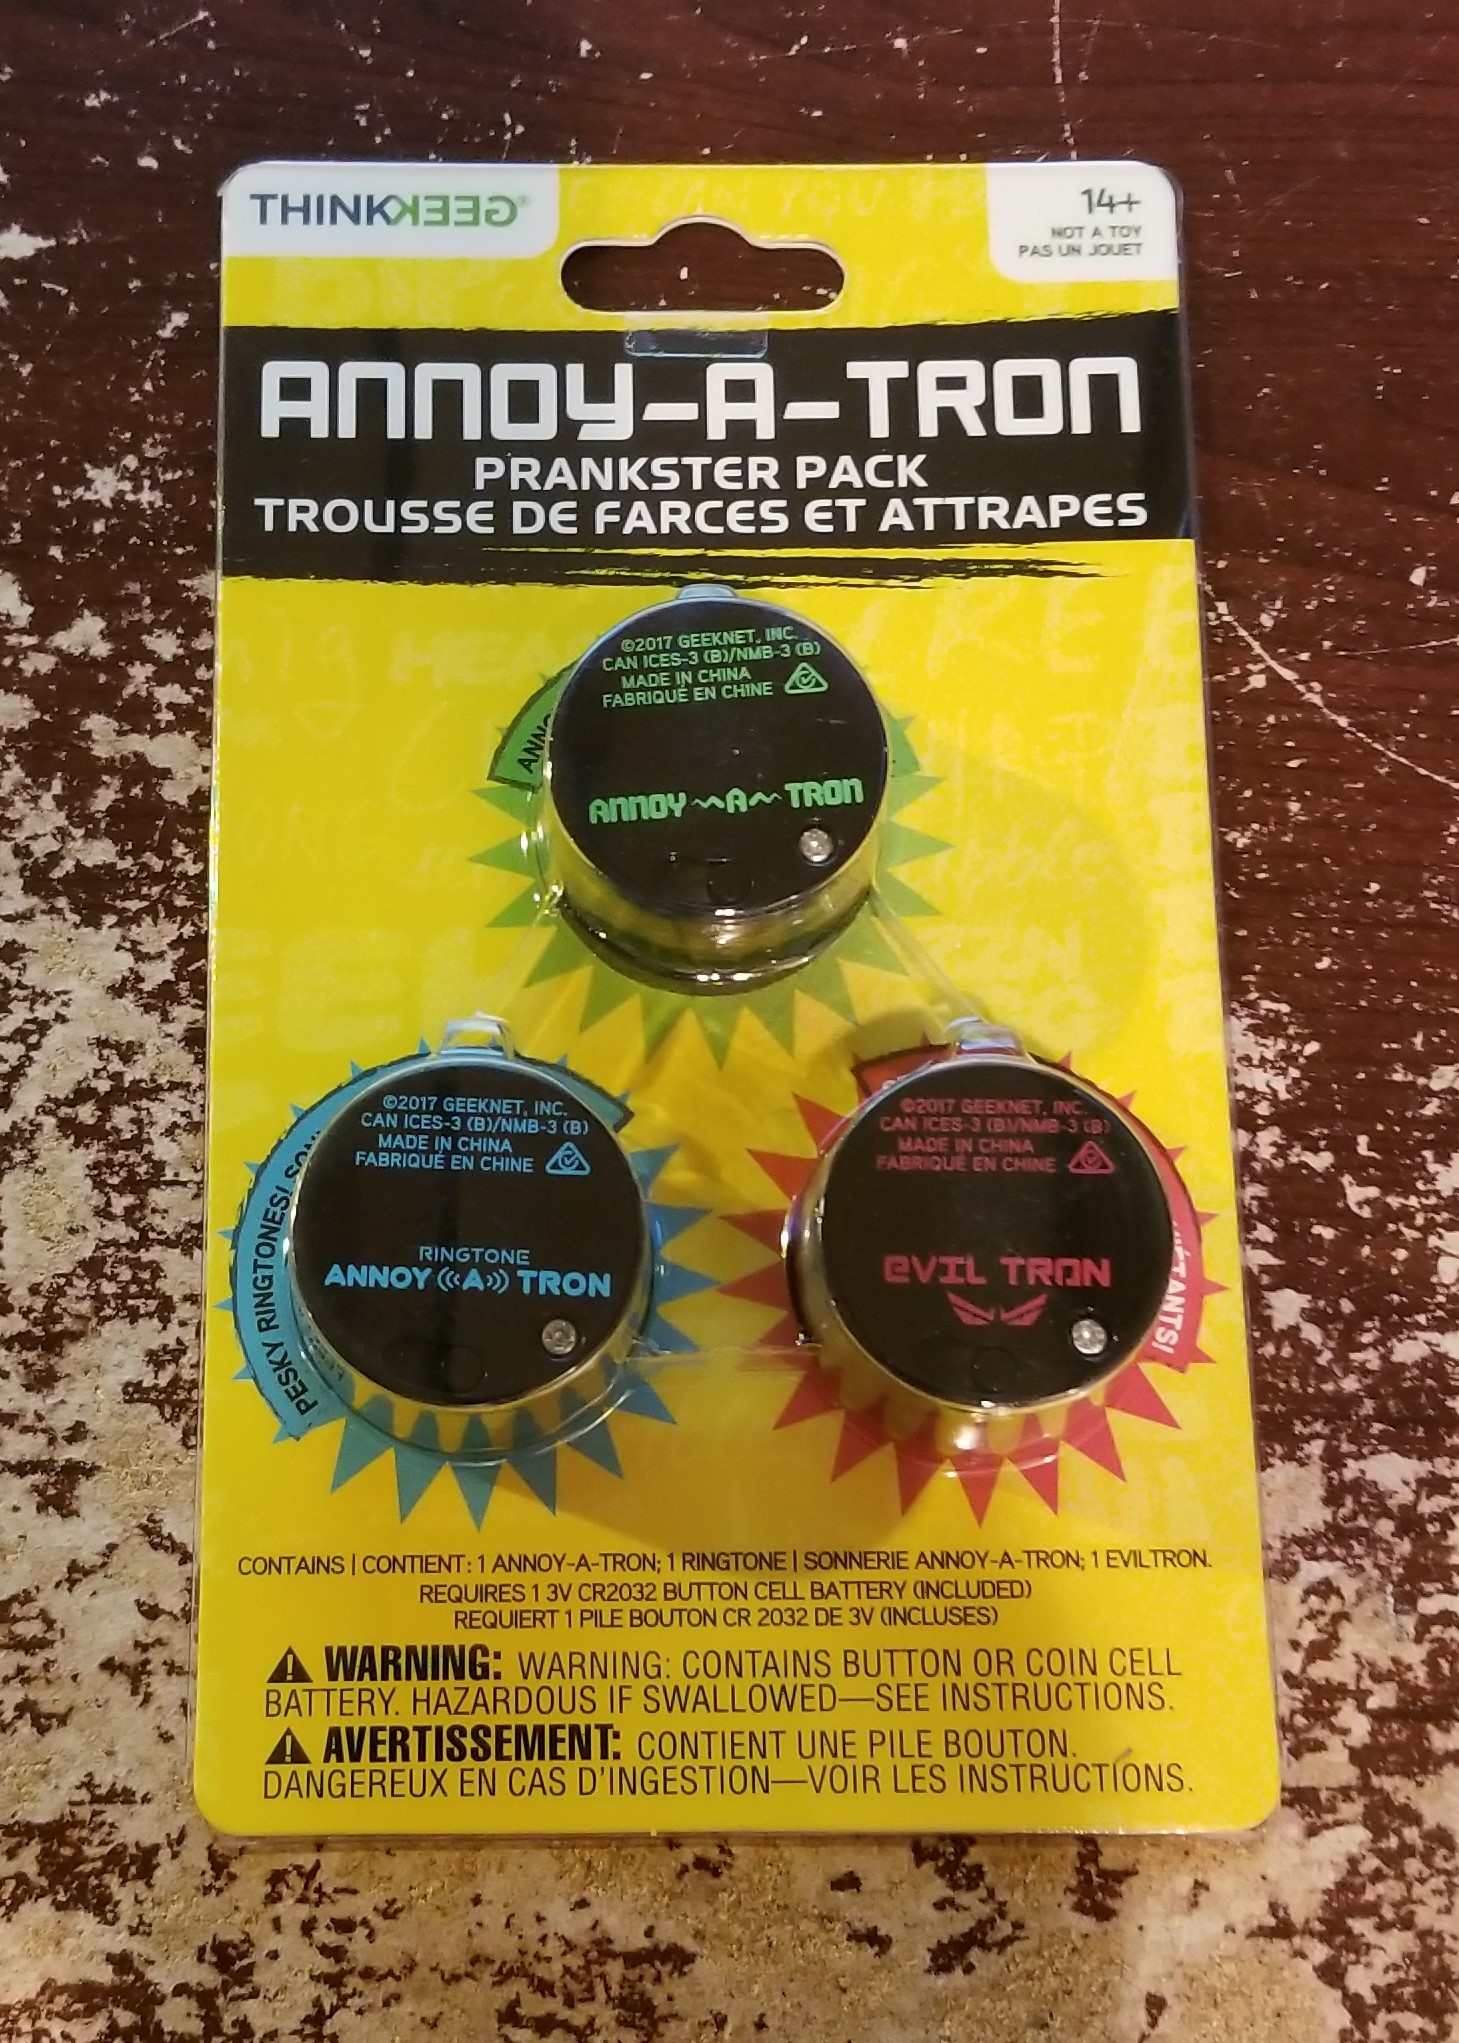 Holiday Fun in the palm of your hand: Annoy-A-Tron Prankster